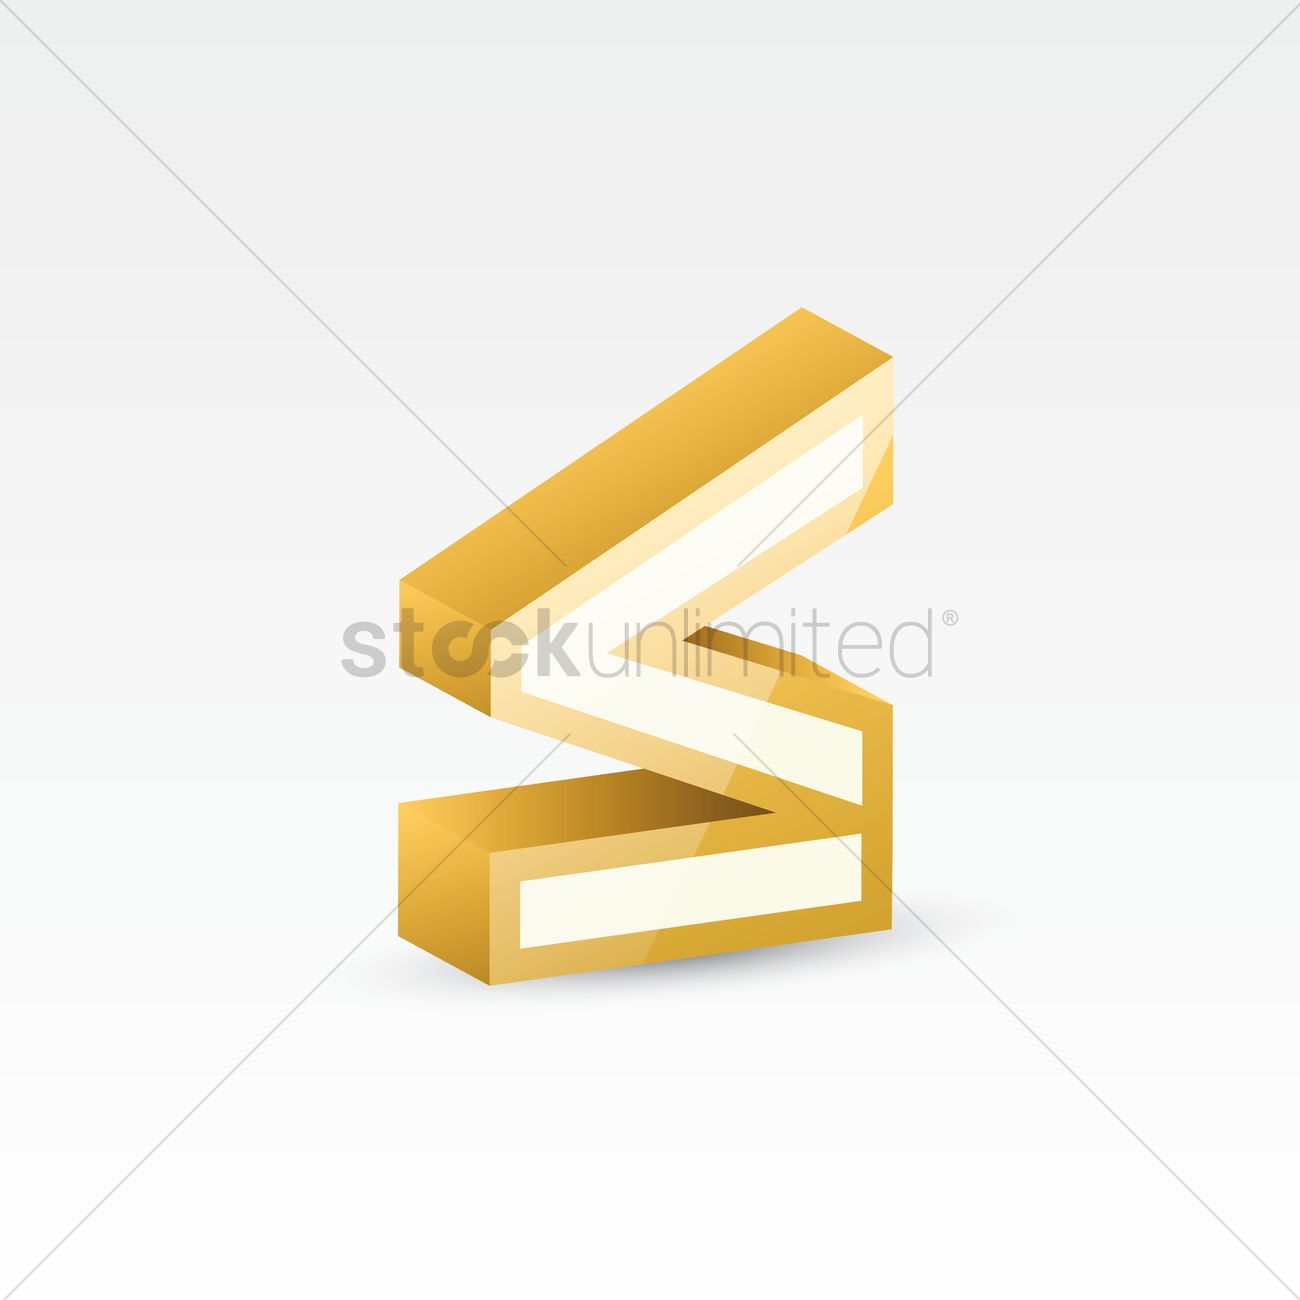 Less Than Equal To Symbol Vector Image 1617119 Stockunlimited